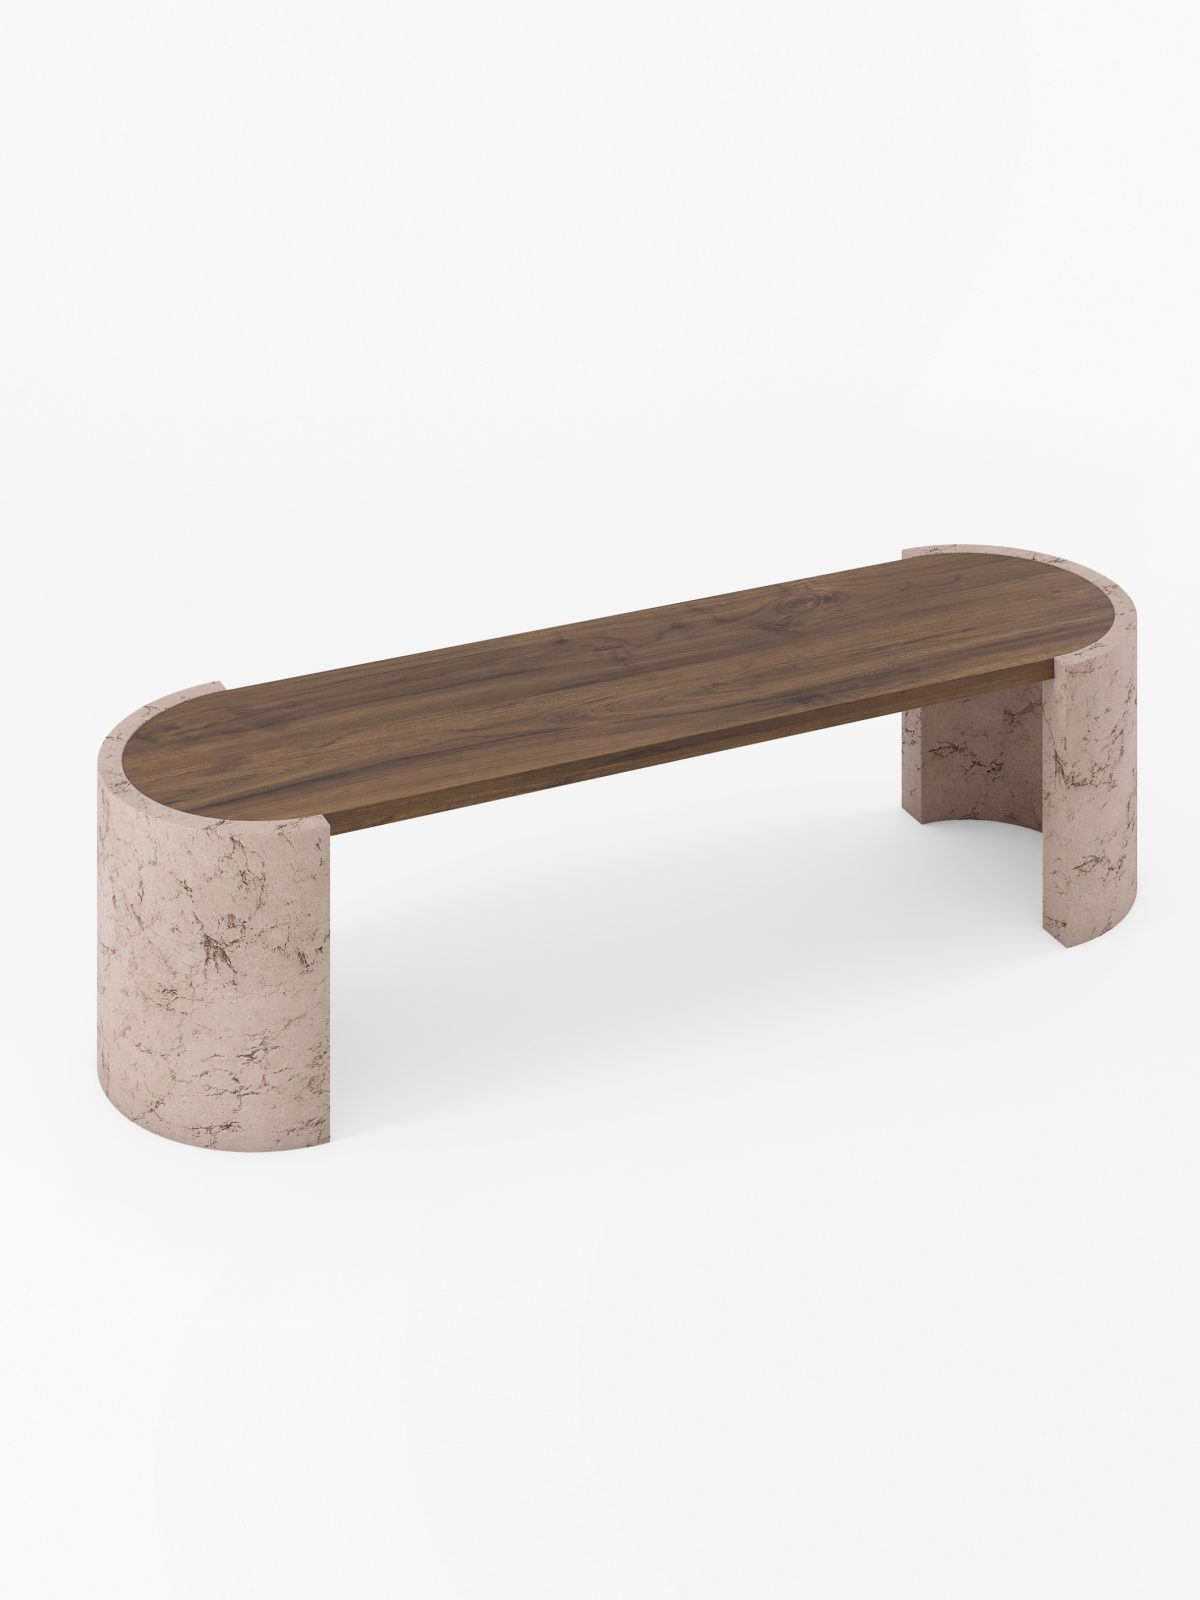 COFFEE TABLE C1 T6 1